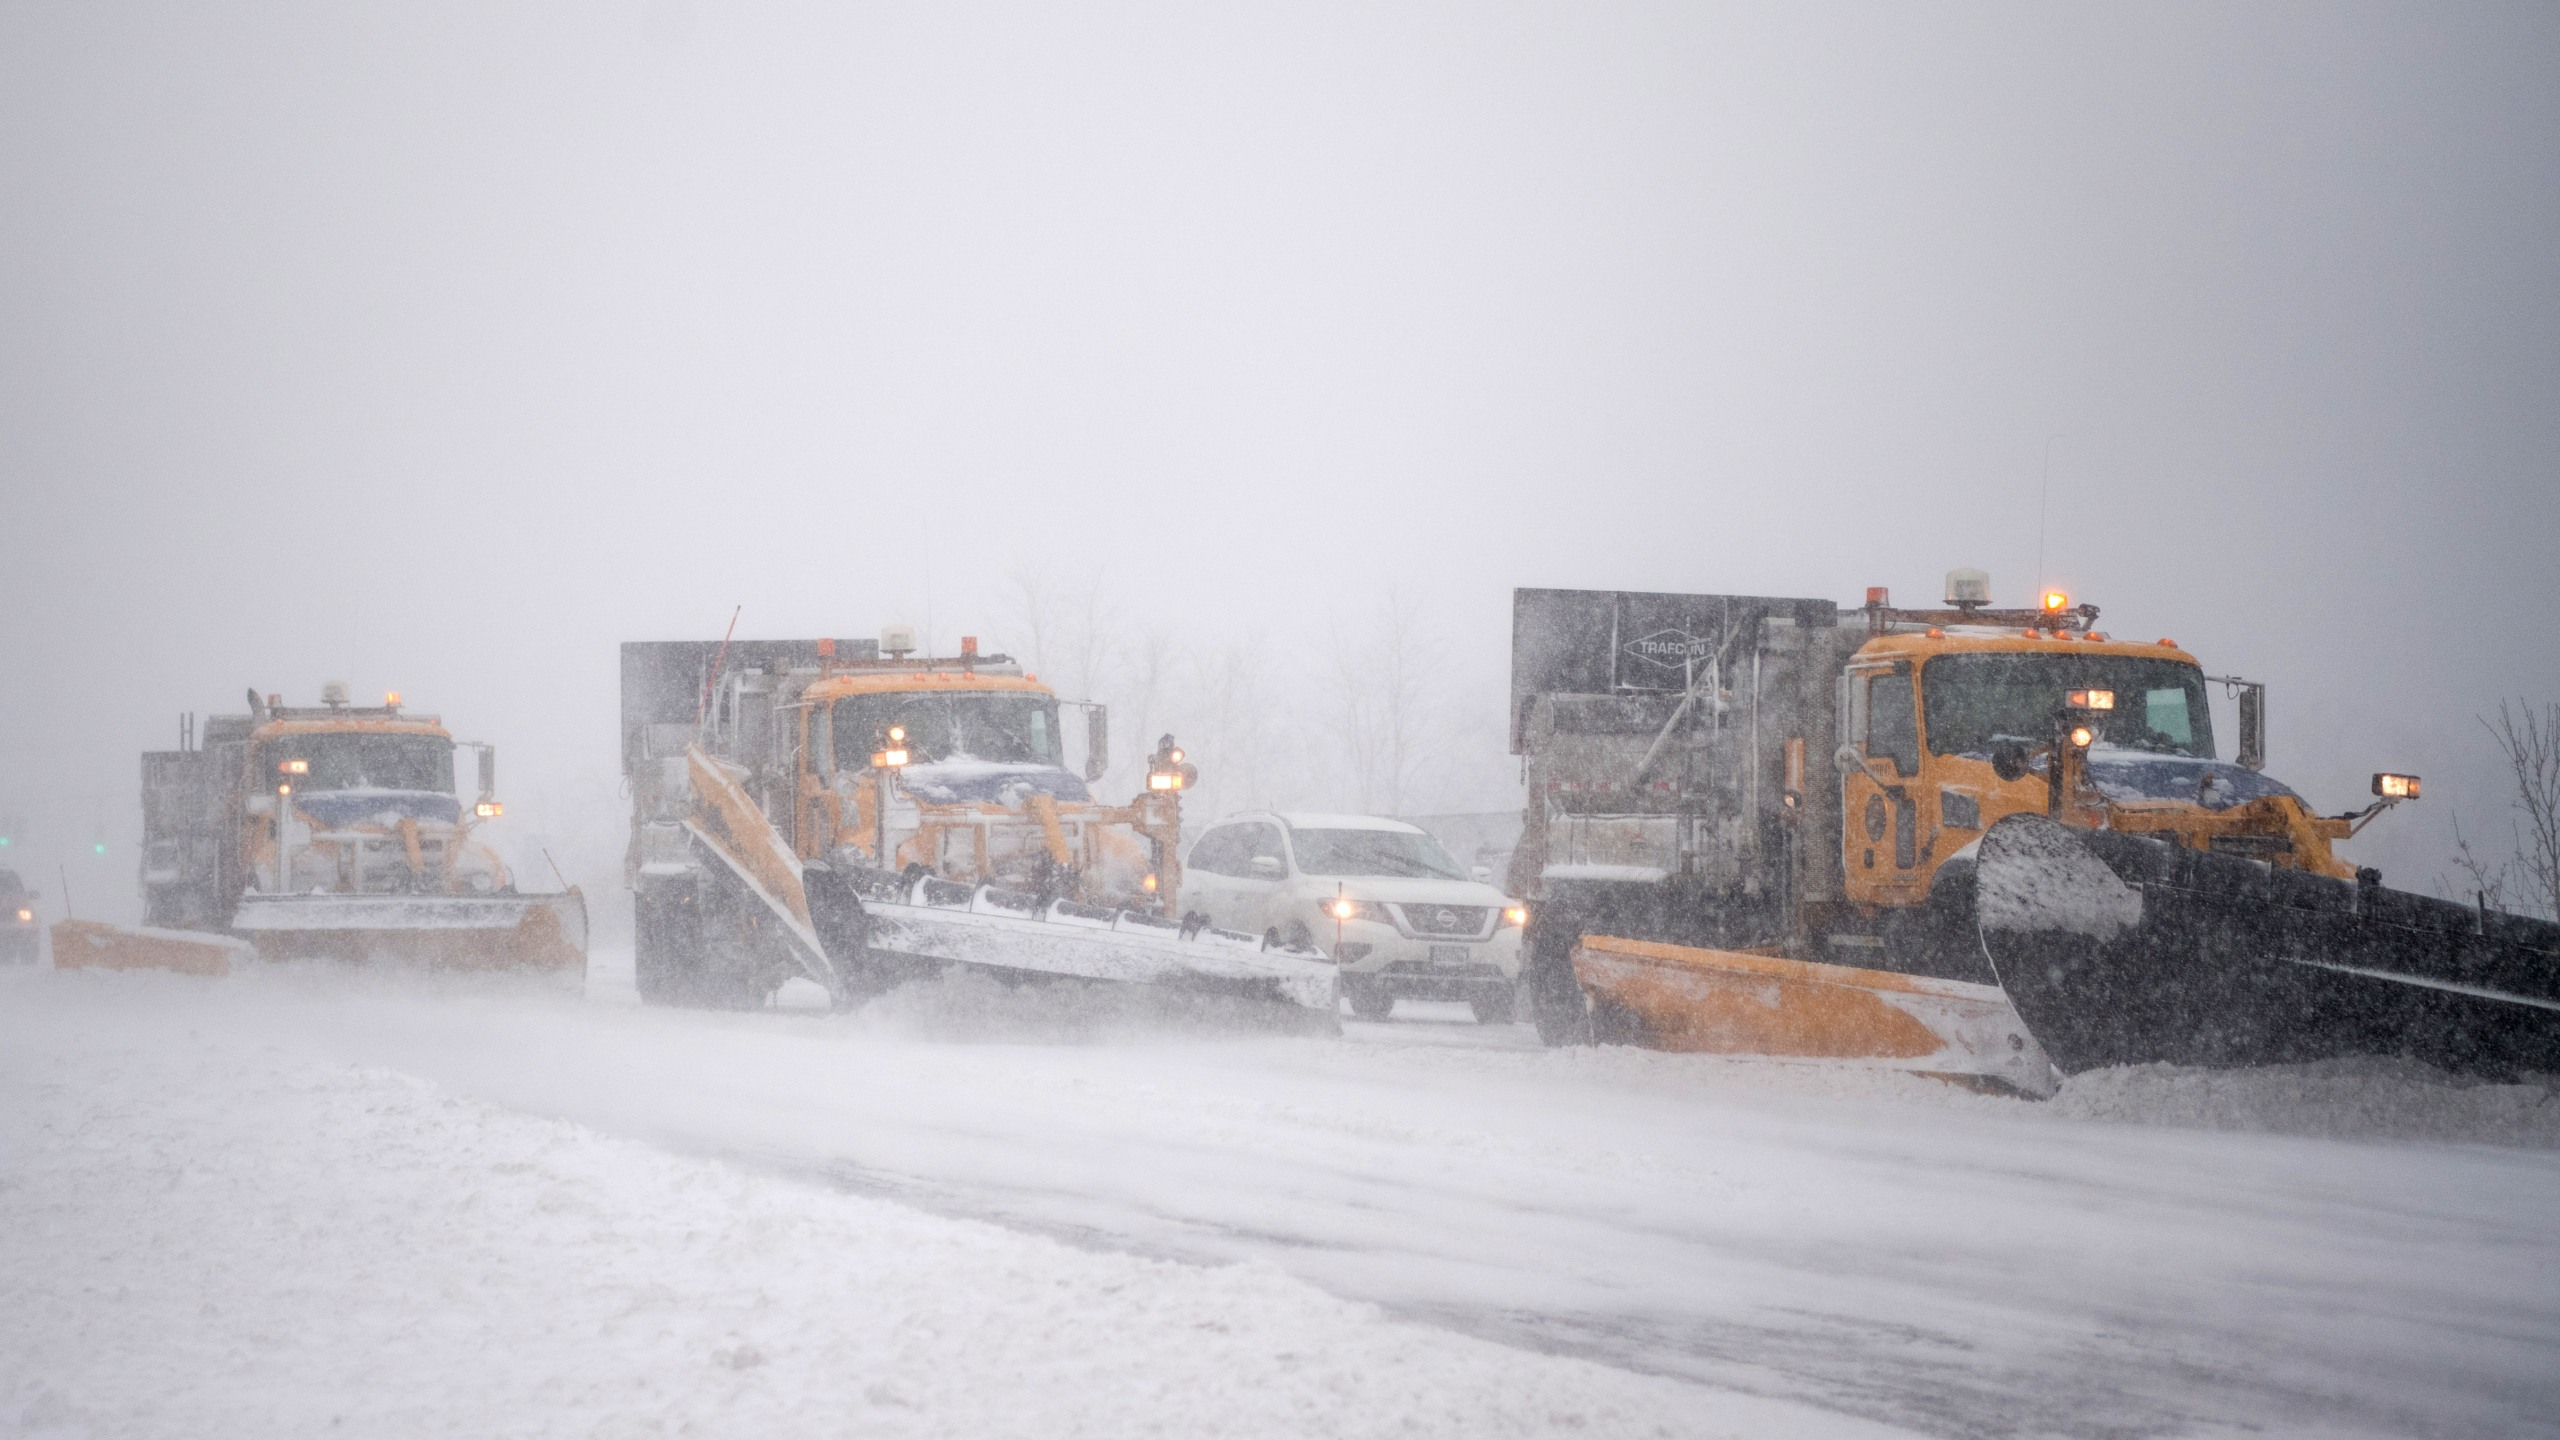 Trucks plow Rt. 112 as a blizzard hits the Northeastern part of the United States on Jan. 4, 2018 in Medford, New York. (Credit: Andrew Theodorakis/Getty Images)